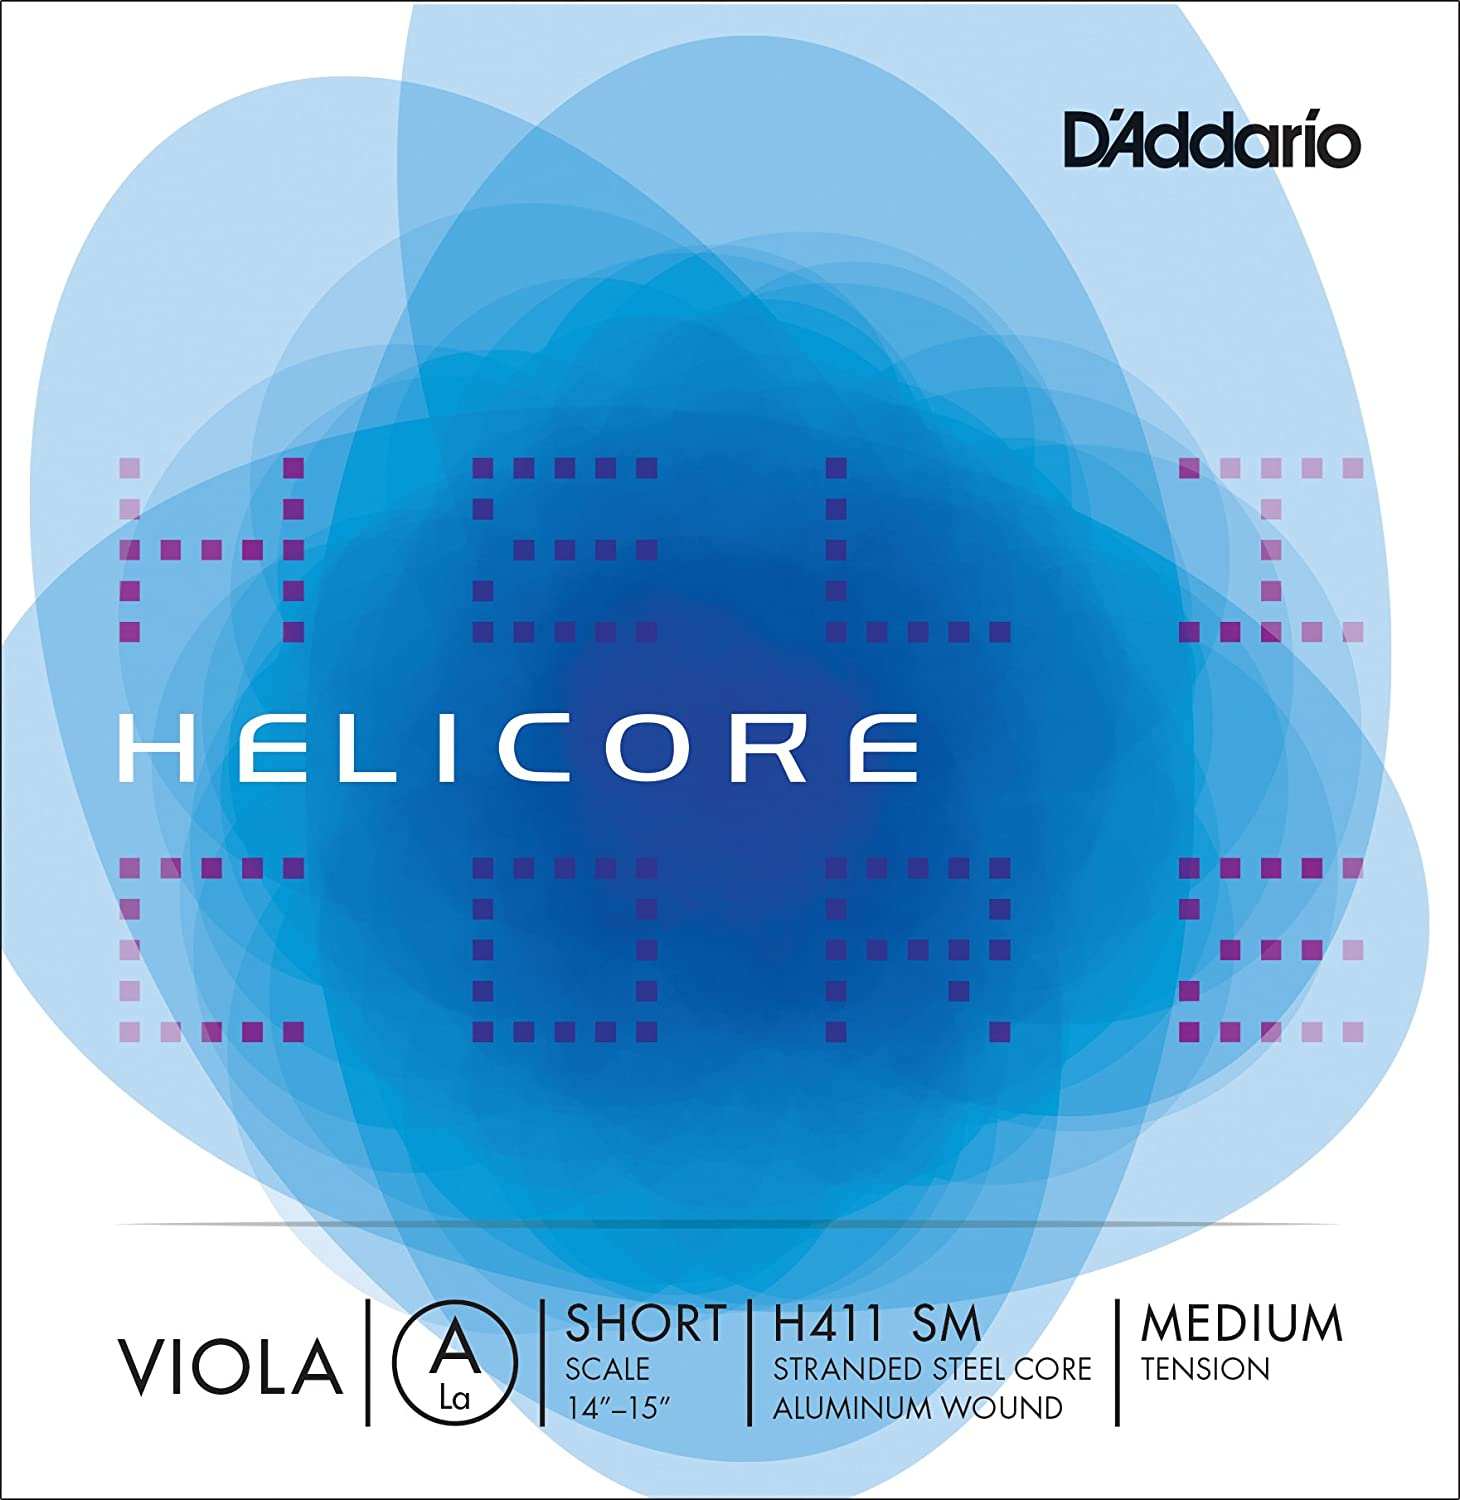 D'Addario Helicore Viola Single A String, Medium Scale, Medium Tension D'Addario &Co. Inc H411 MM